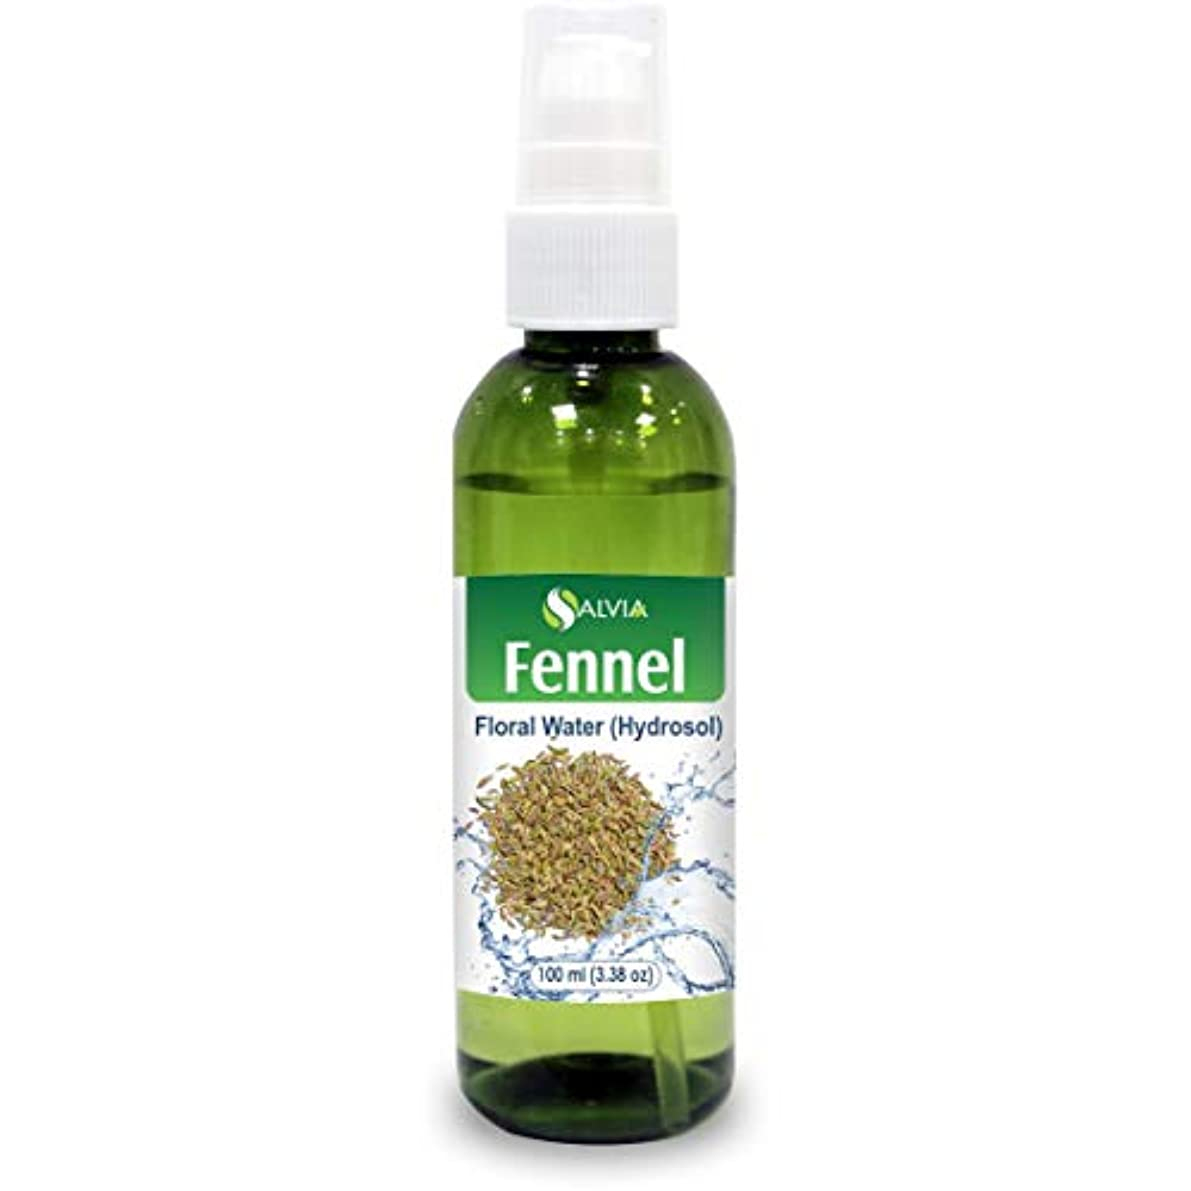 創始者達成可能三十Fennel Floral Water 100ml (Hydrosol) 100% Pure And Natural